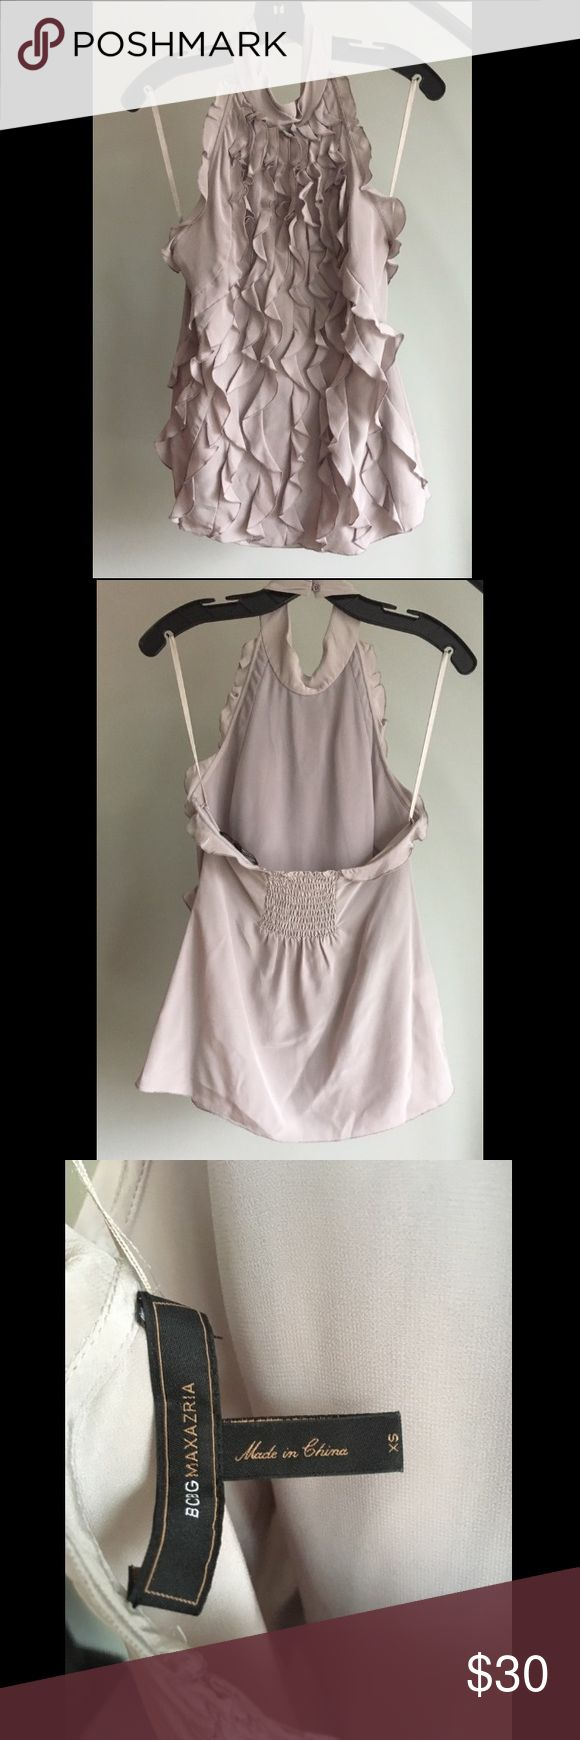 BCBG Ruffled Halter Top Beautiful and feminine, light grey, silk, tuxedo, halter top. Rock this backless top with a black suit for an easy day-to-night outfit. Also available in hot pink. BCBGMaxAzria Tops Blouses